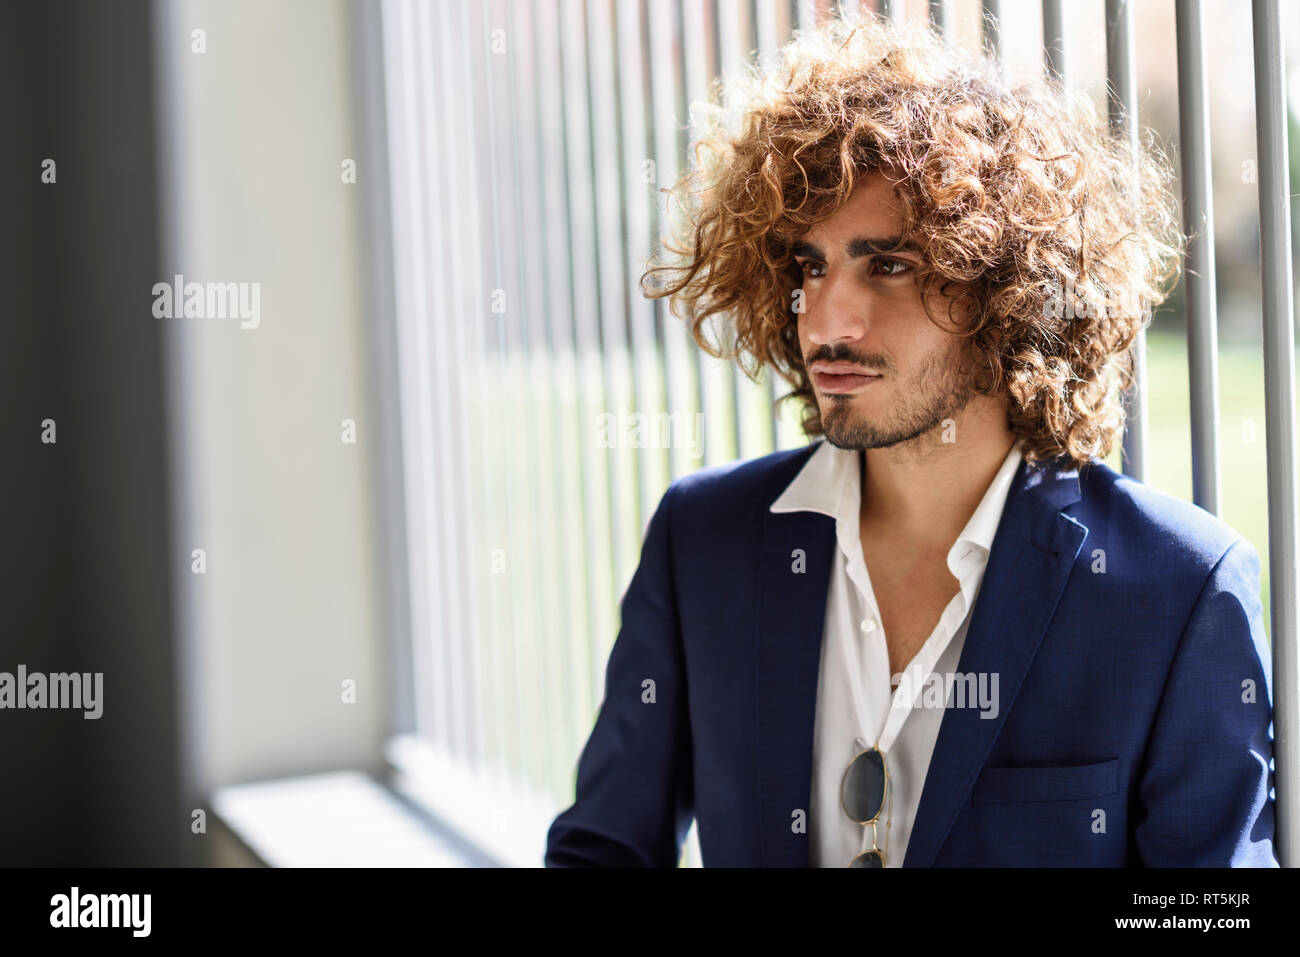 Portrait of young fashionable man with beard and curly hair Stock Photo